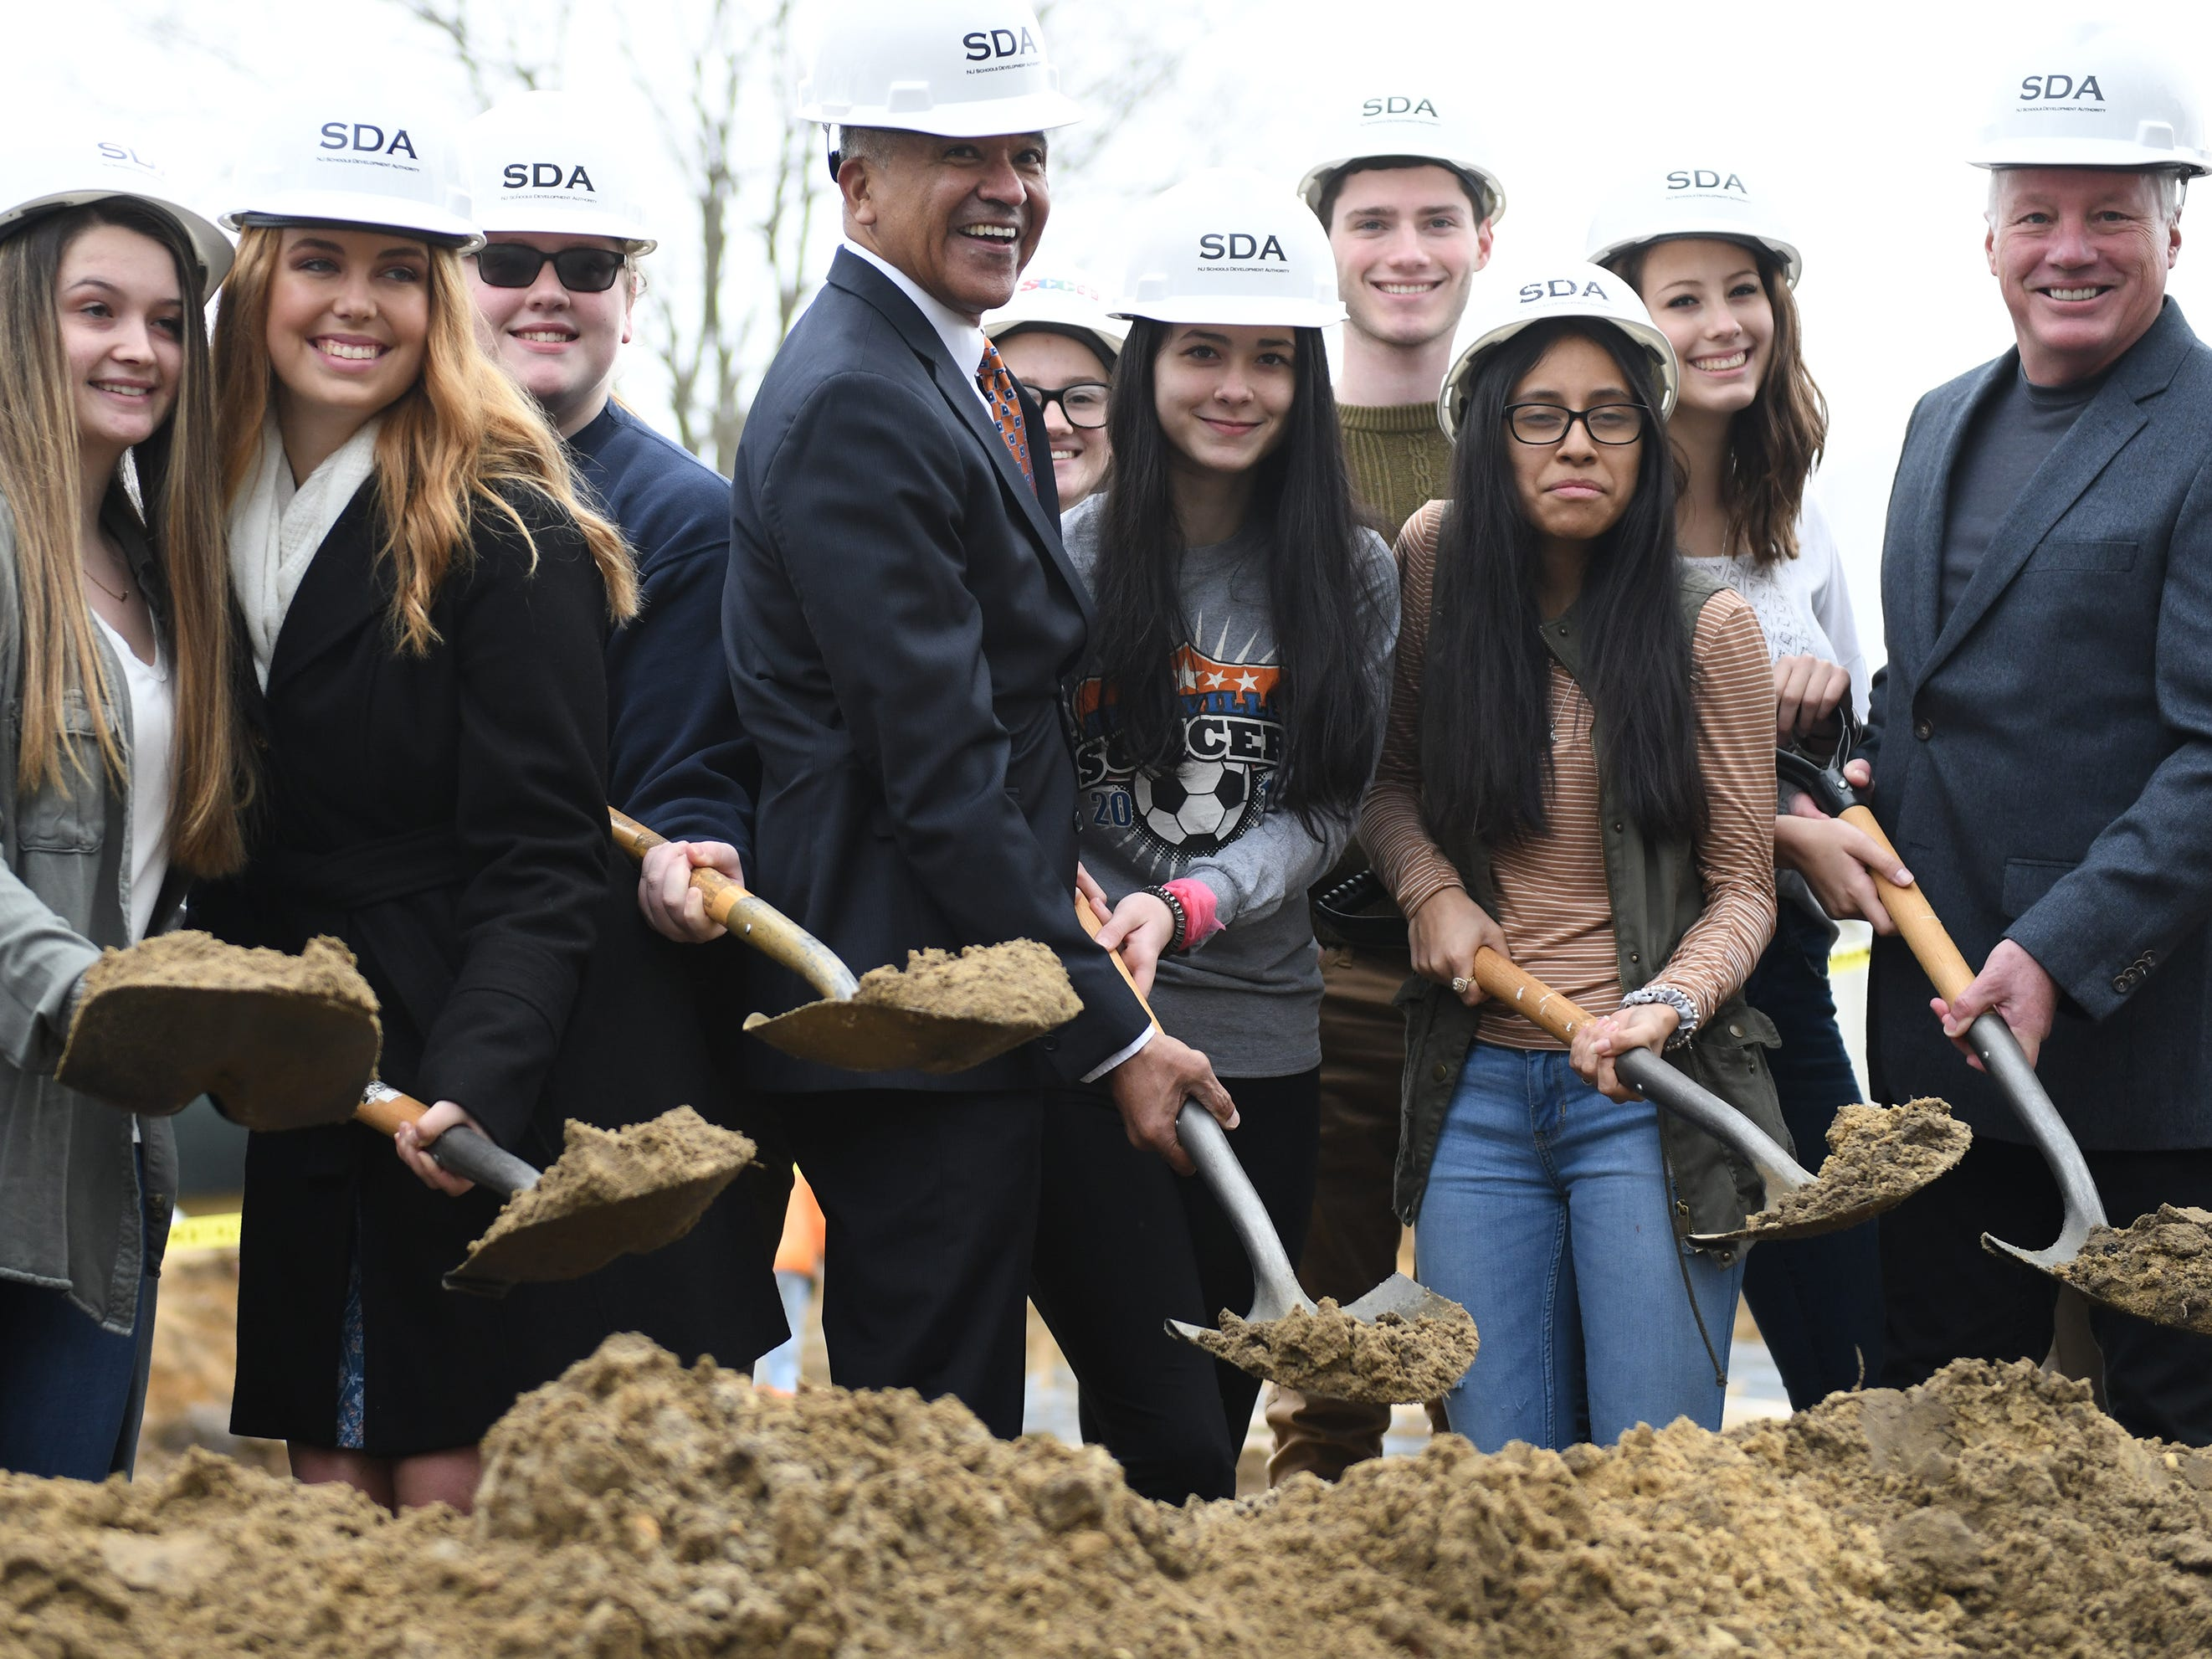 Millville Mayor Michael Santiago (center) takes part in the groundbreaking ceremony at Millville High School on Thursday, Feb. 7, 2019.